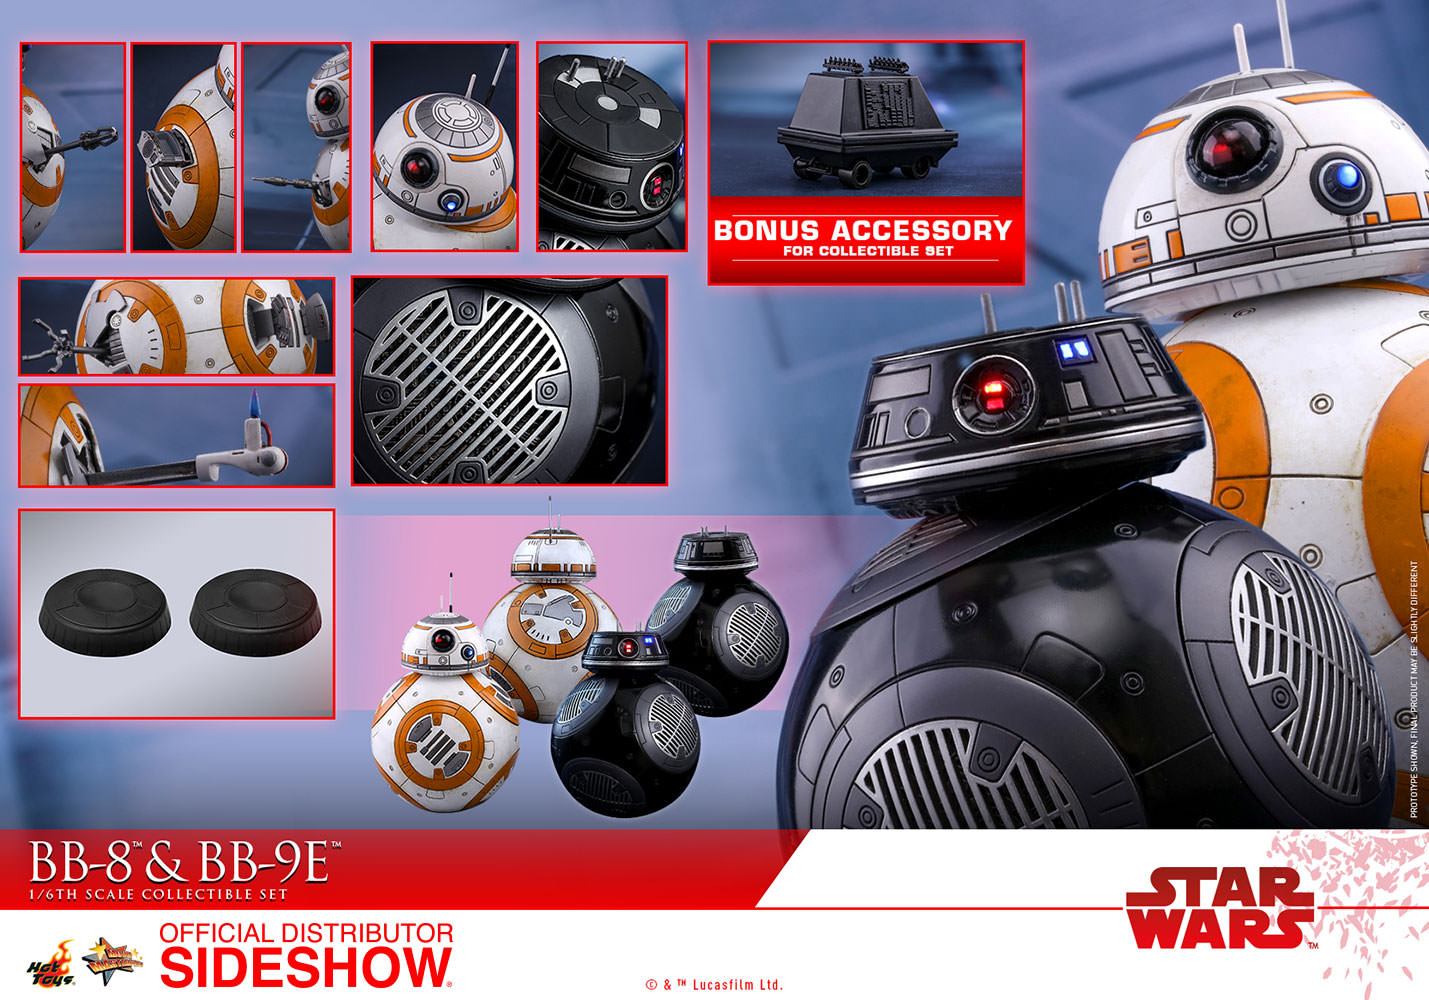 star-wars-the-last-jedi-bb-8-bb-9e-sixth-scale-set-hot-toys-903190-09